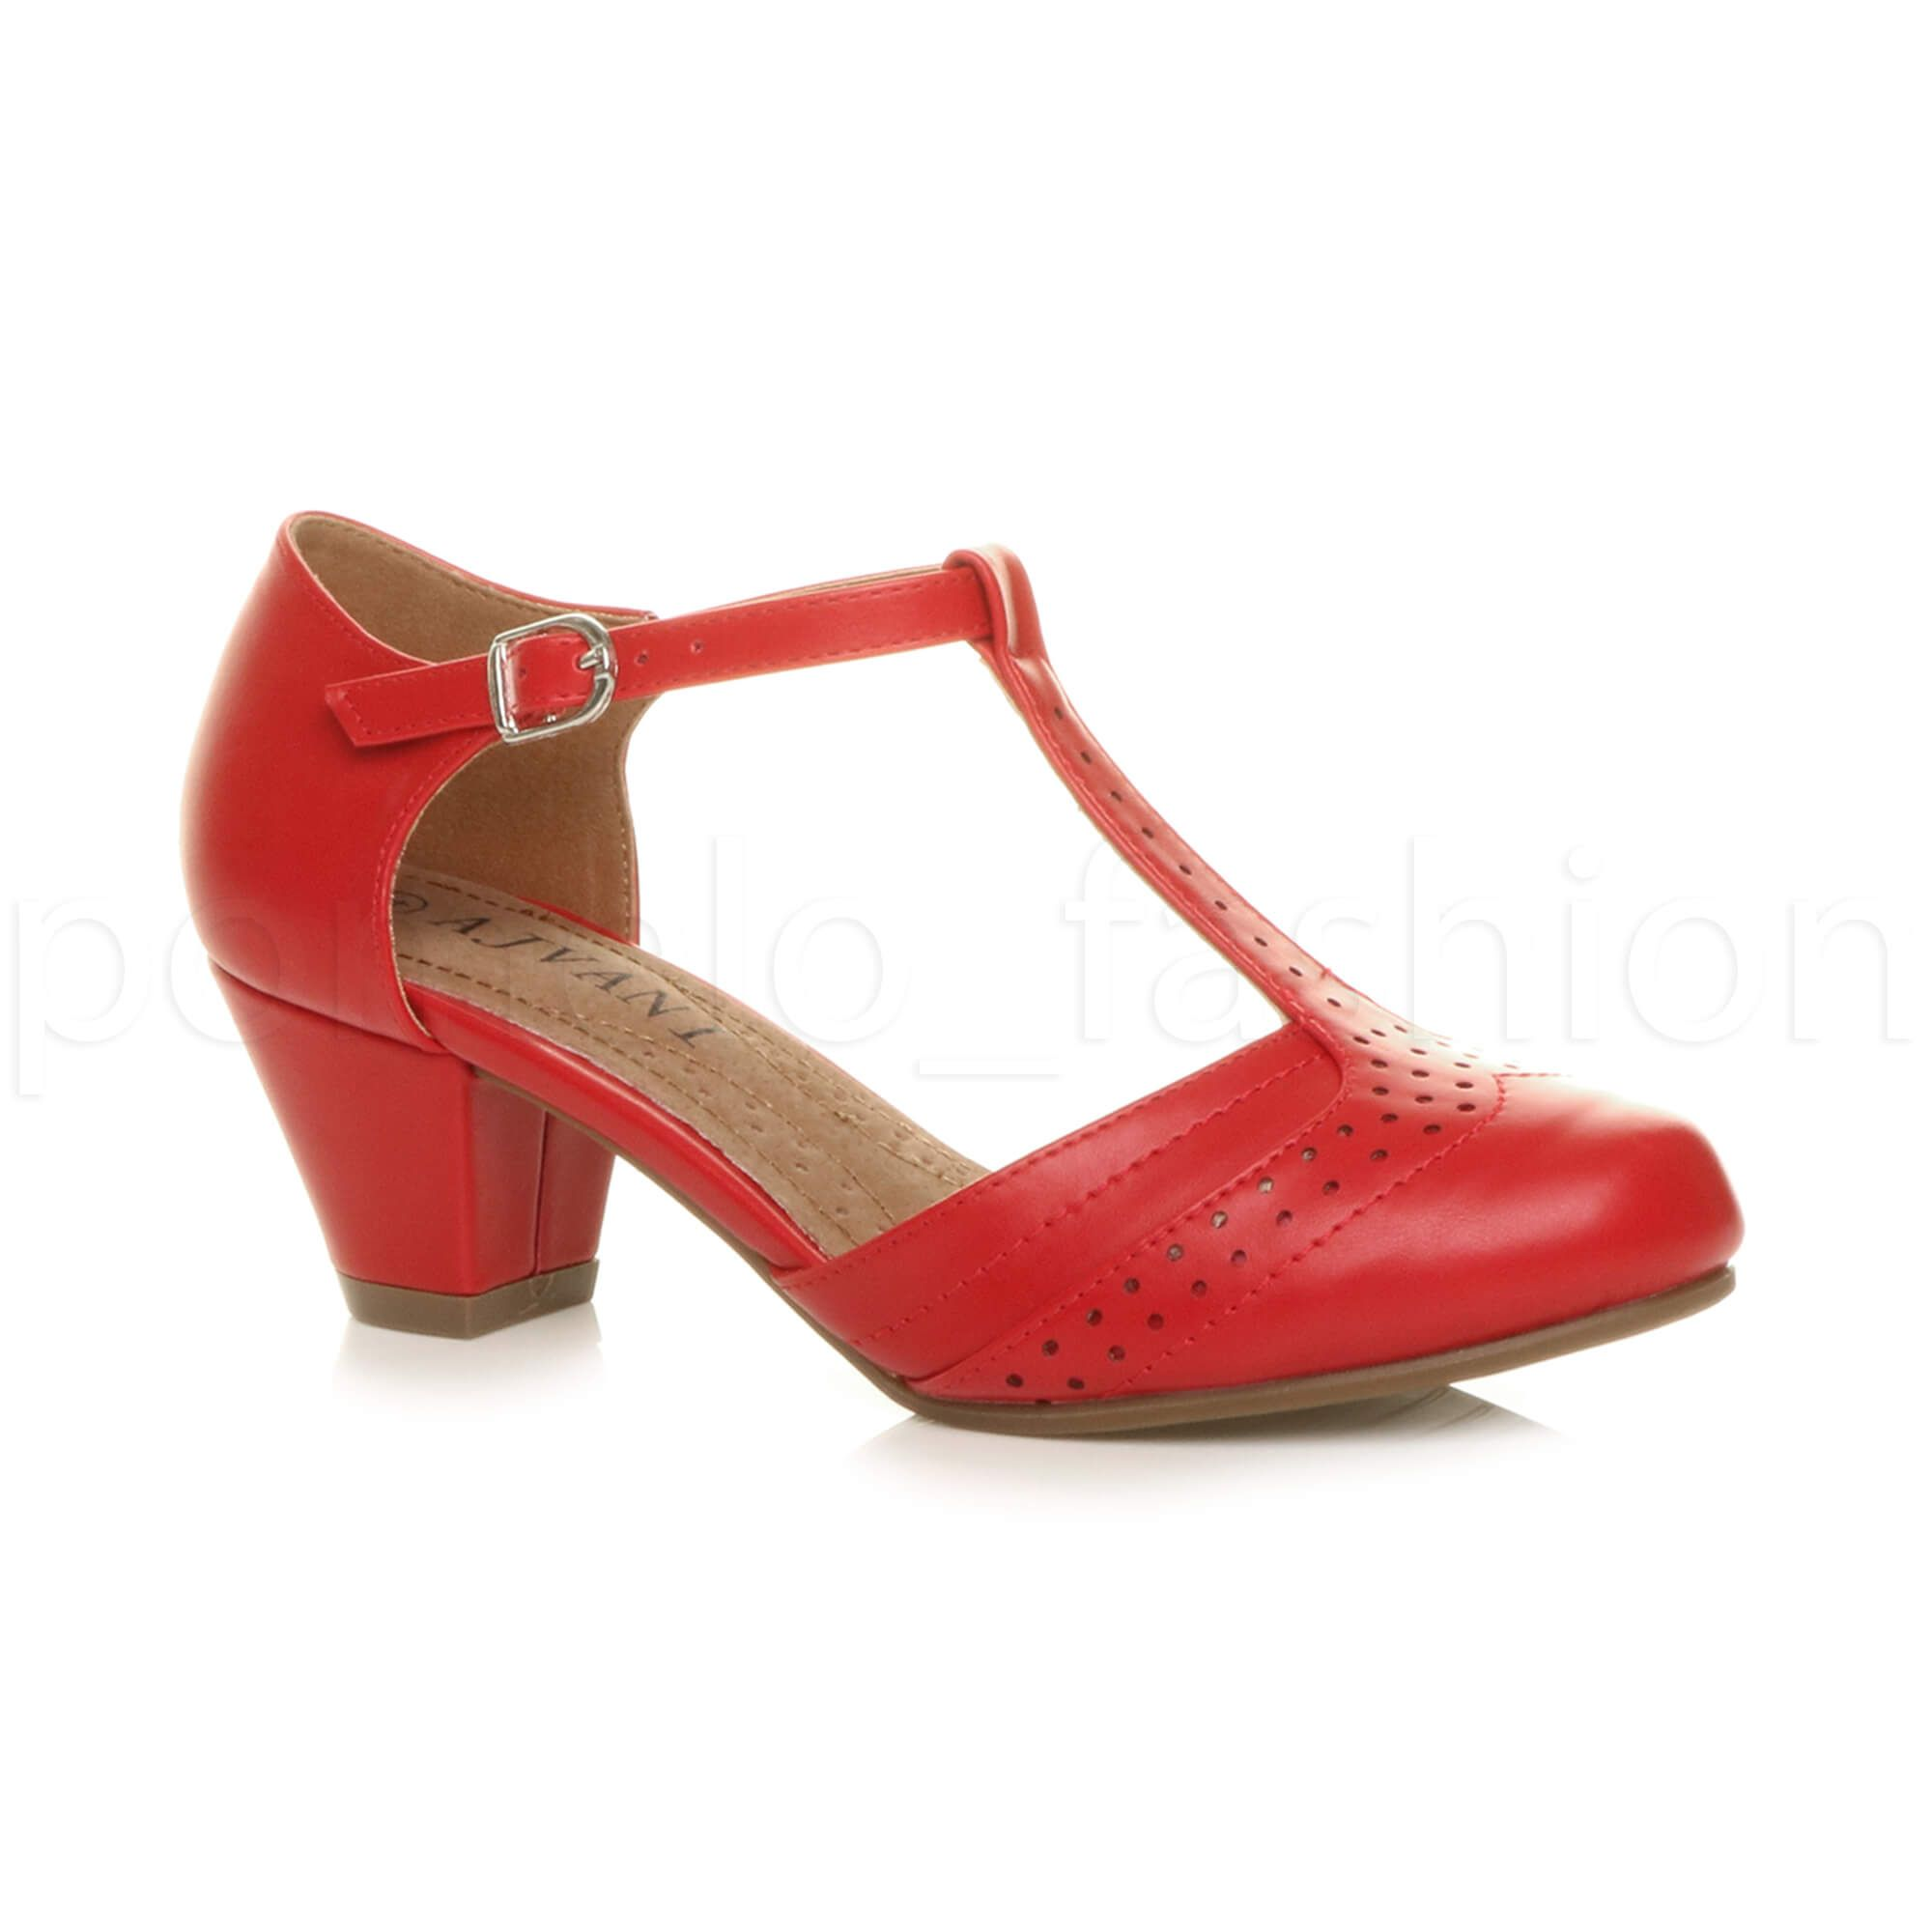 5118b69e487c1 Details about WOMENS LADIES LOW MID HEEL T-BAR MARY JANE 50'S 60'S ...